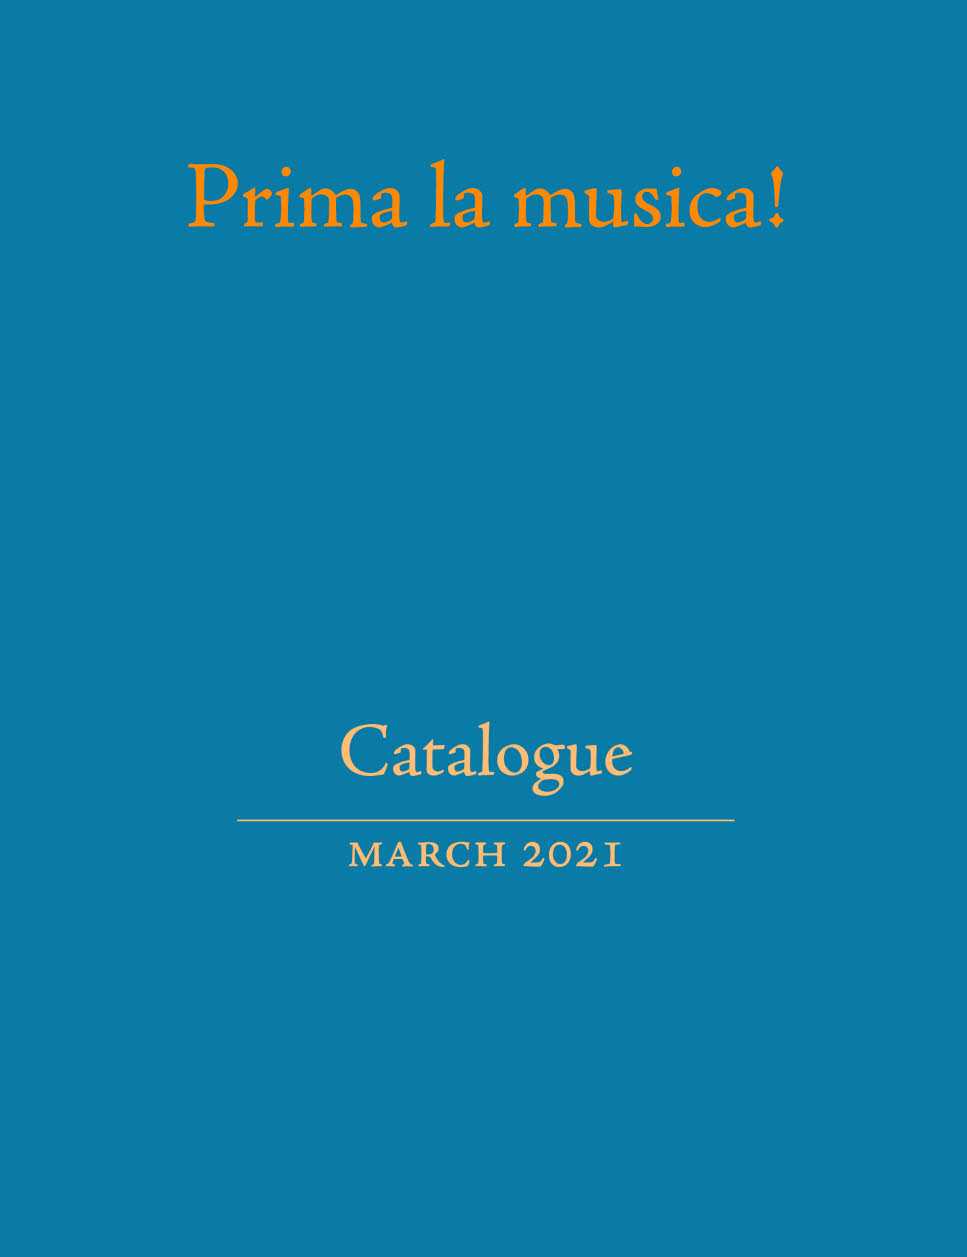 Prima la musica! catalogue for March 2021